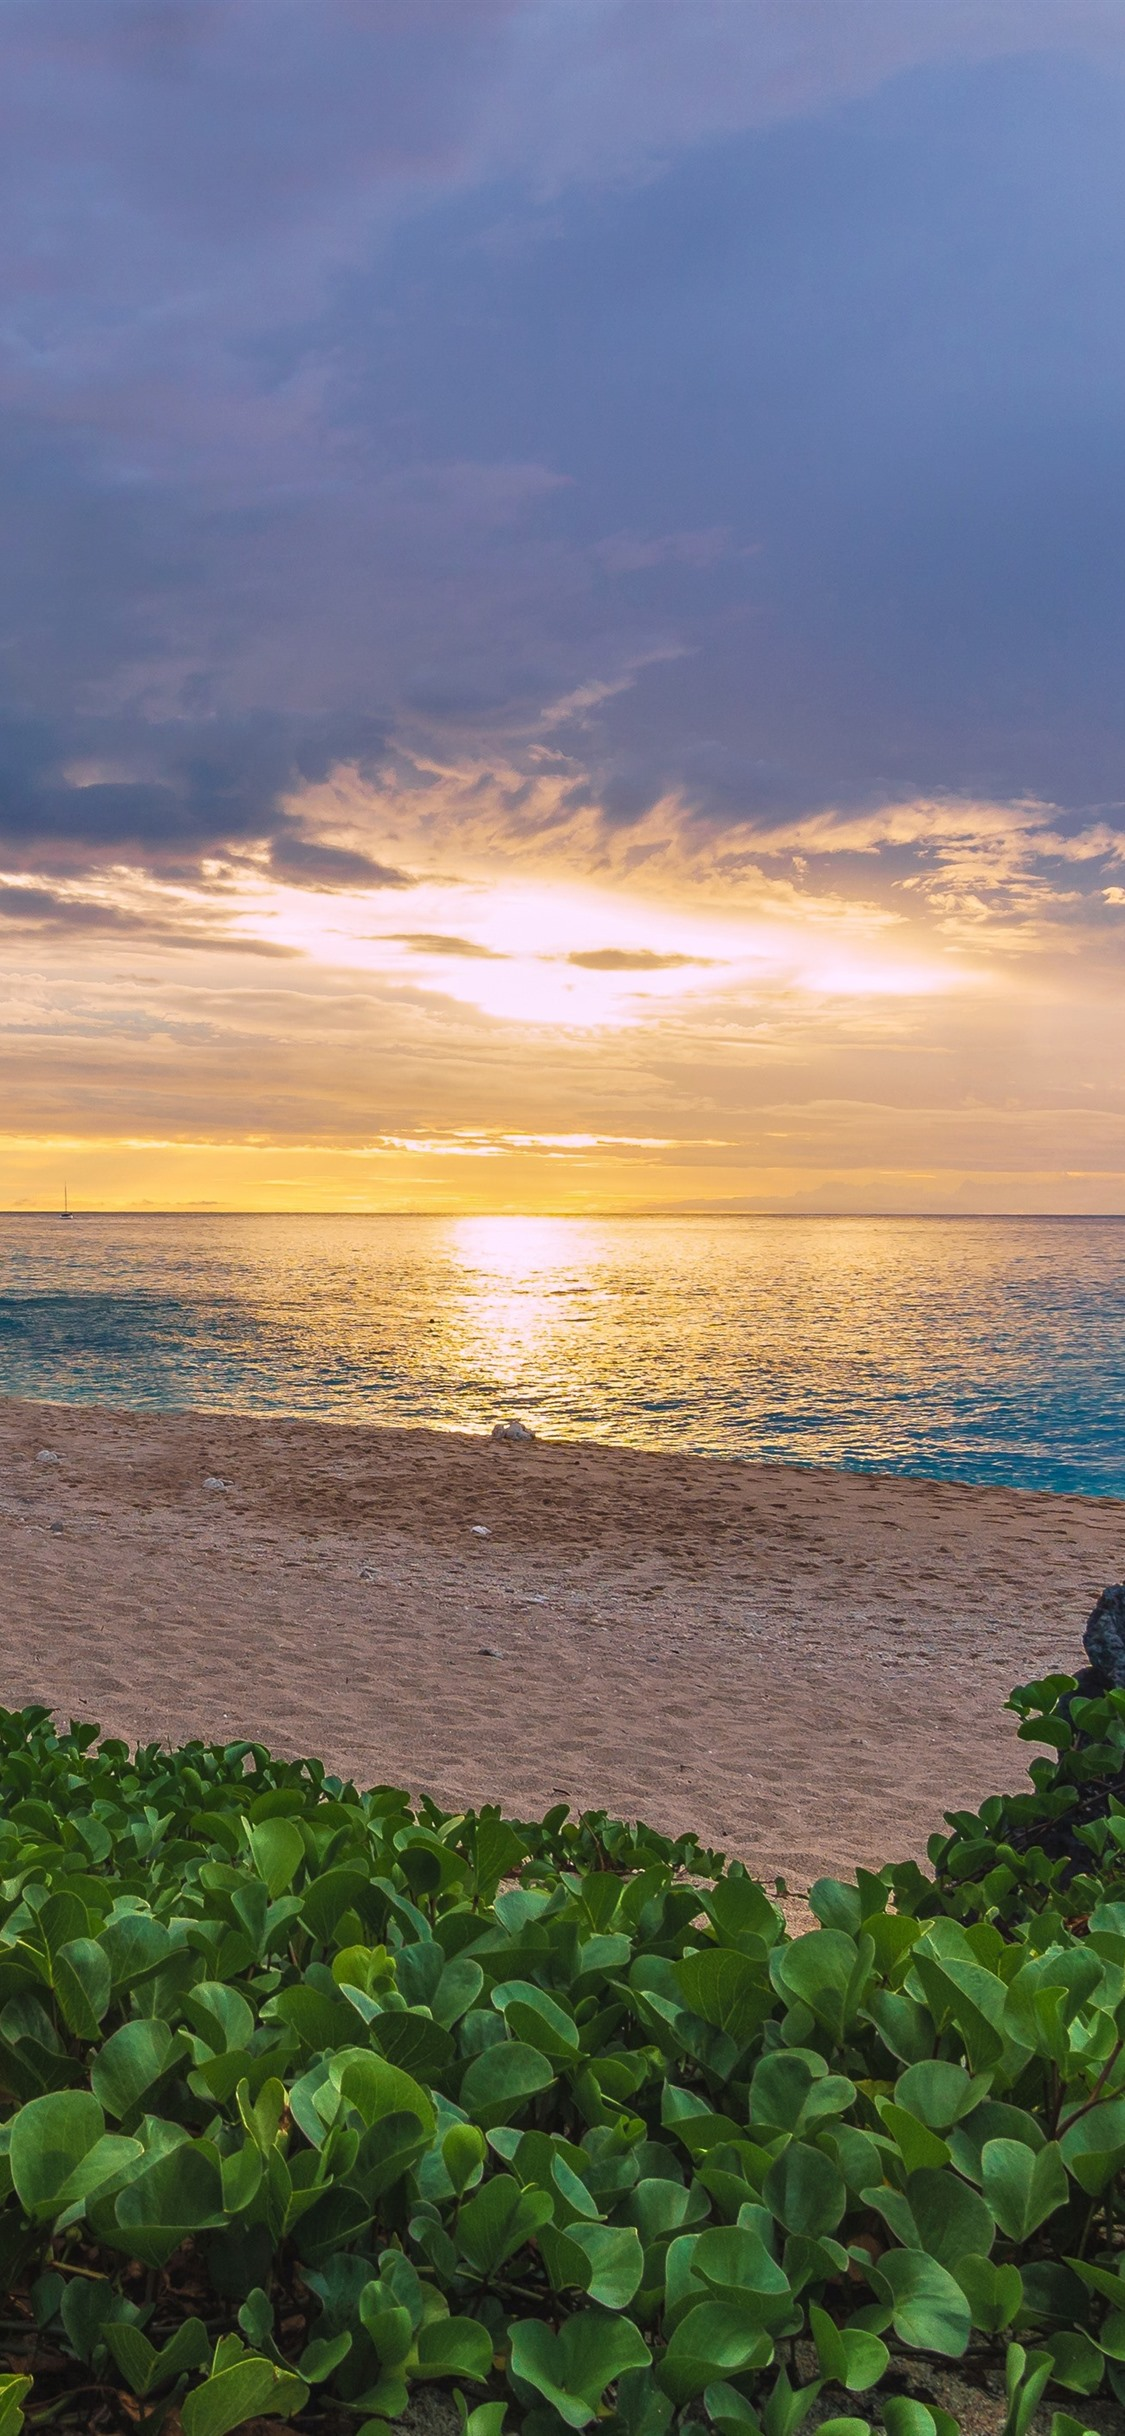 France Indian Ocean Sea Beach Palm Trees Plants Sunset 1242x2688 Iphone 11 Pro Xs Max Wallpaper Background Picture Image